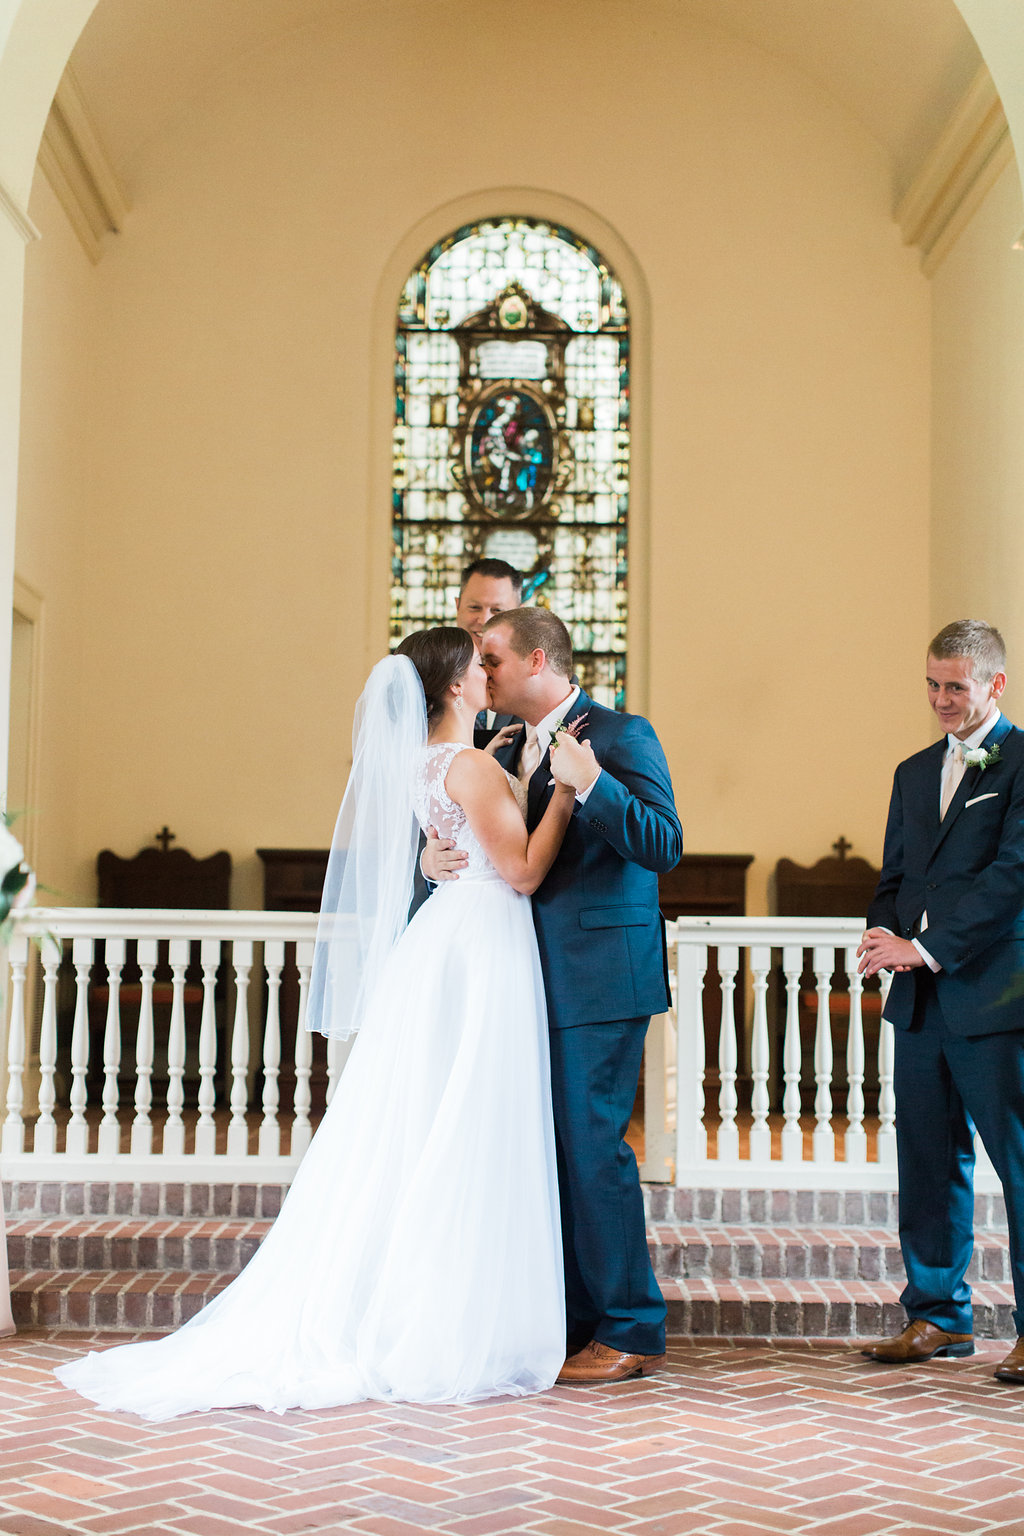 the-happy-bloom-photography-ivory-and-beau-wedding-planning-ivory-and-beau-bridal-boutique-whitfield-chapel-wedding-10-downing-wedding-savannah-wedding-historic-savannah-wedding-savannah-wedding-planner-savannah-weddings-a-to-zinnias-33.jpg